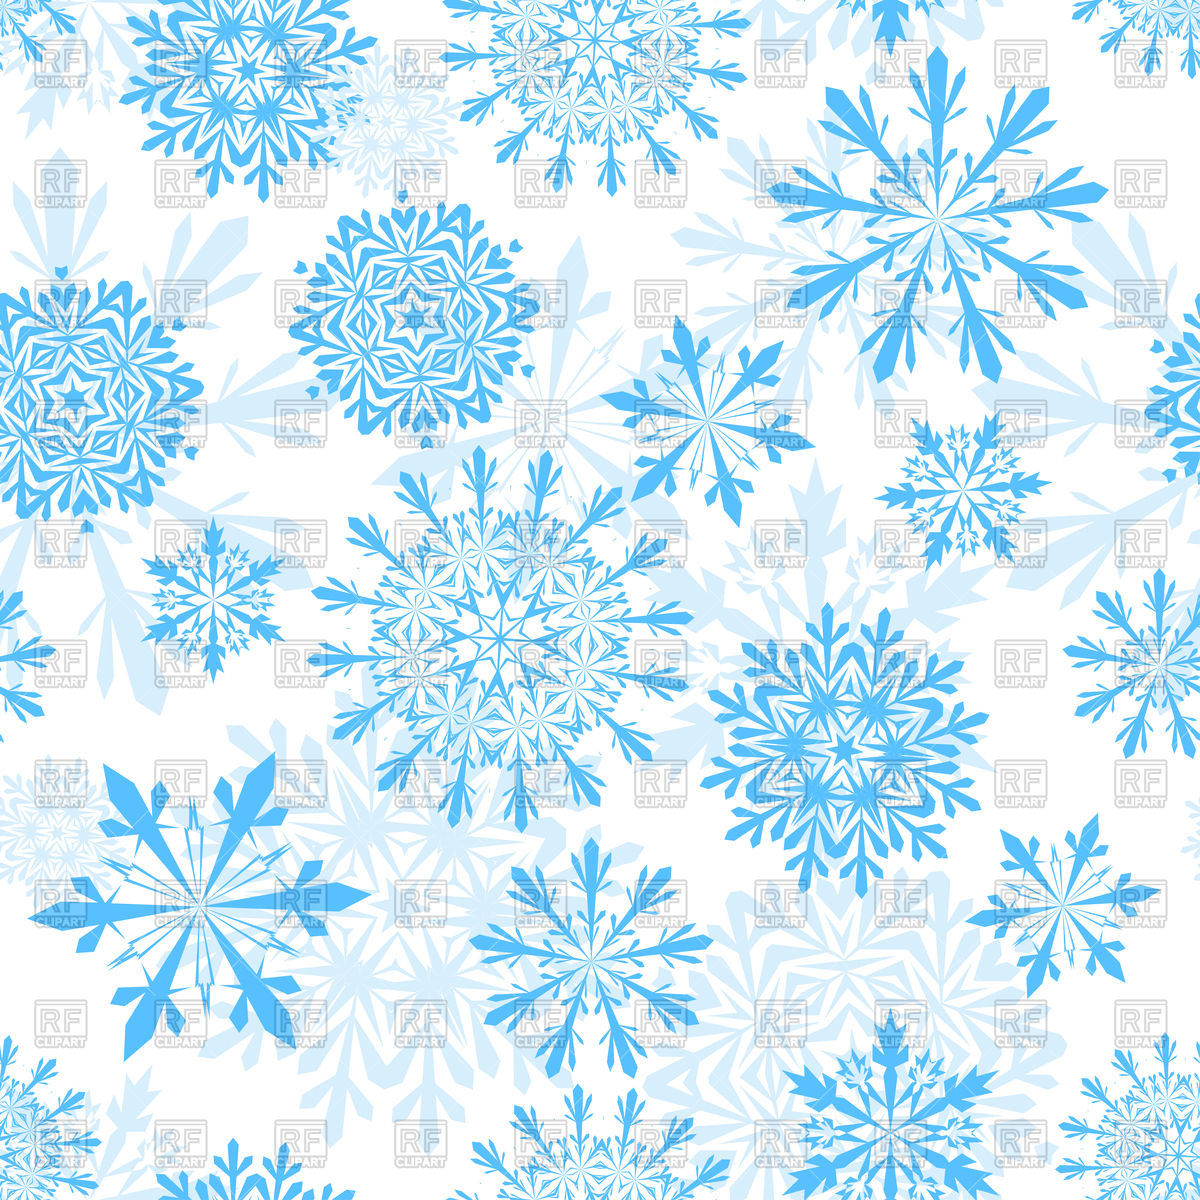 Free cliparts background download. Winter clipart backdrop